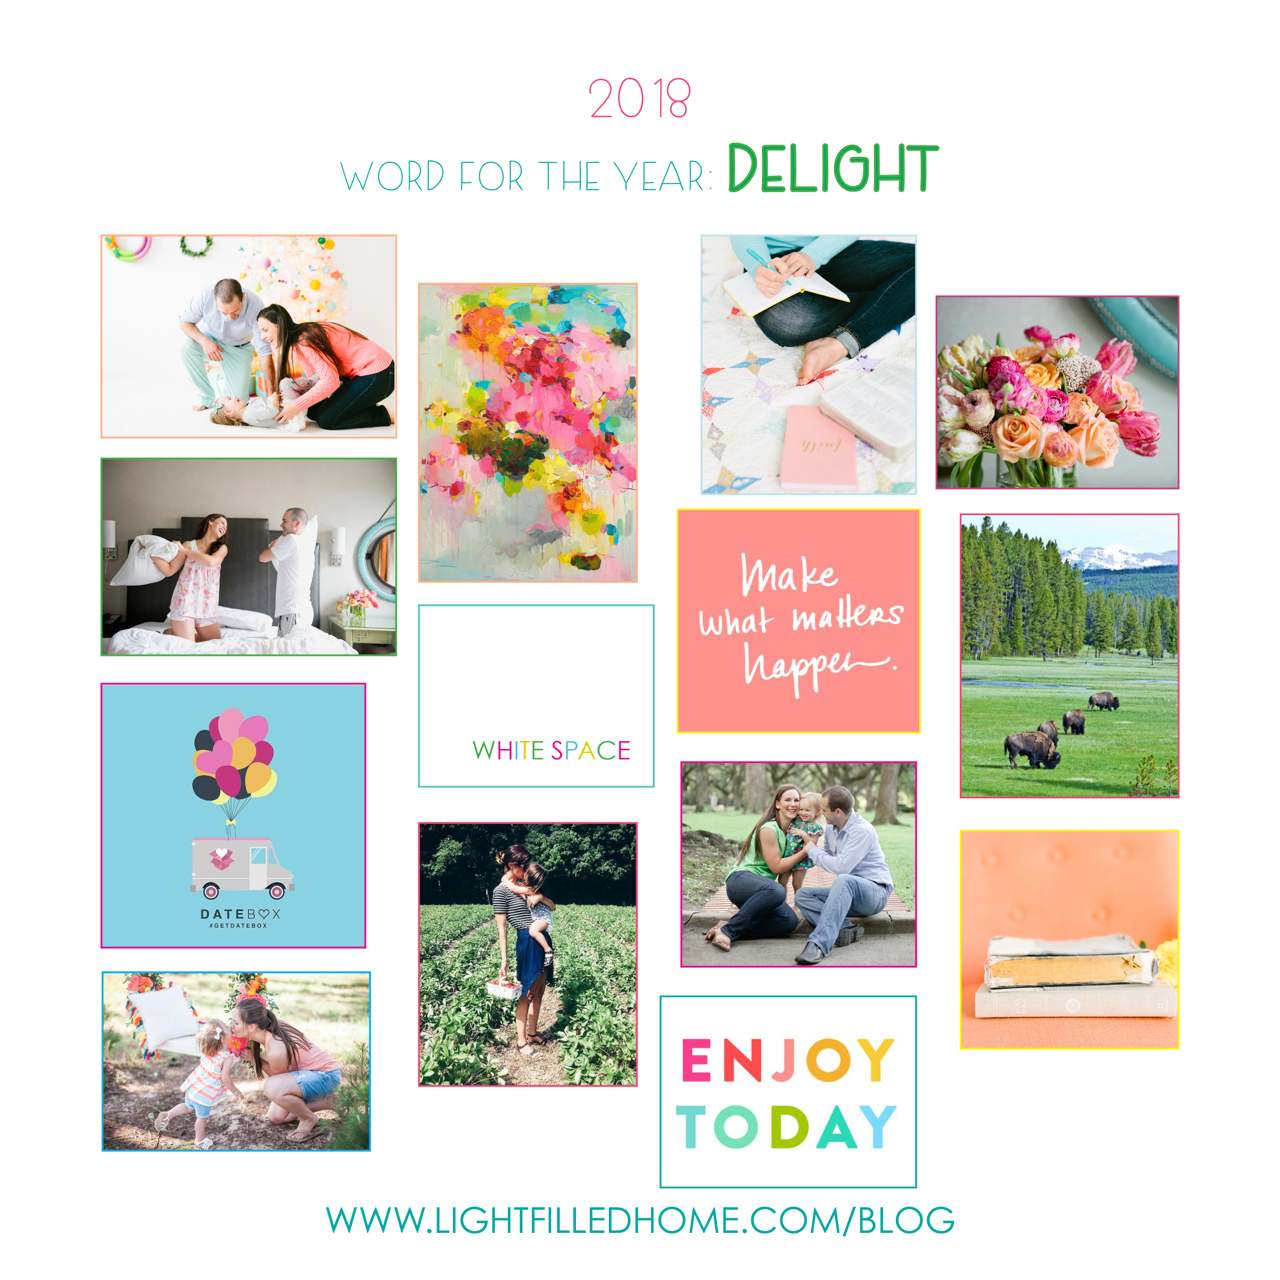 Delight in 2018 | Setting Good Goals | Lightfilldhome.com/blog